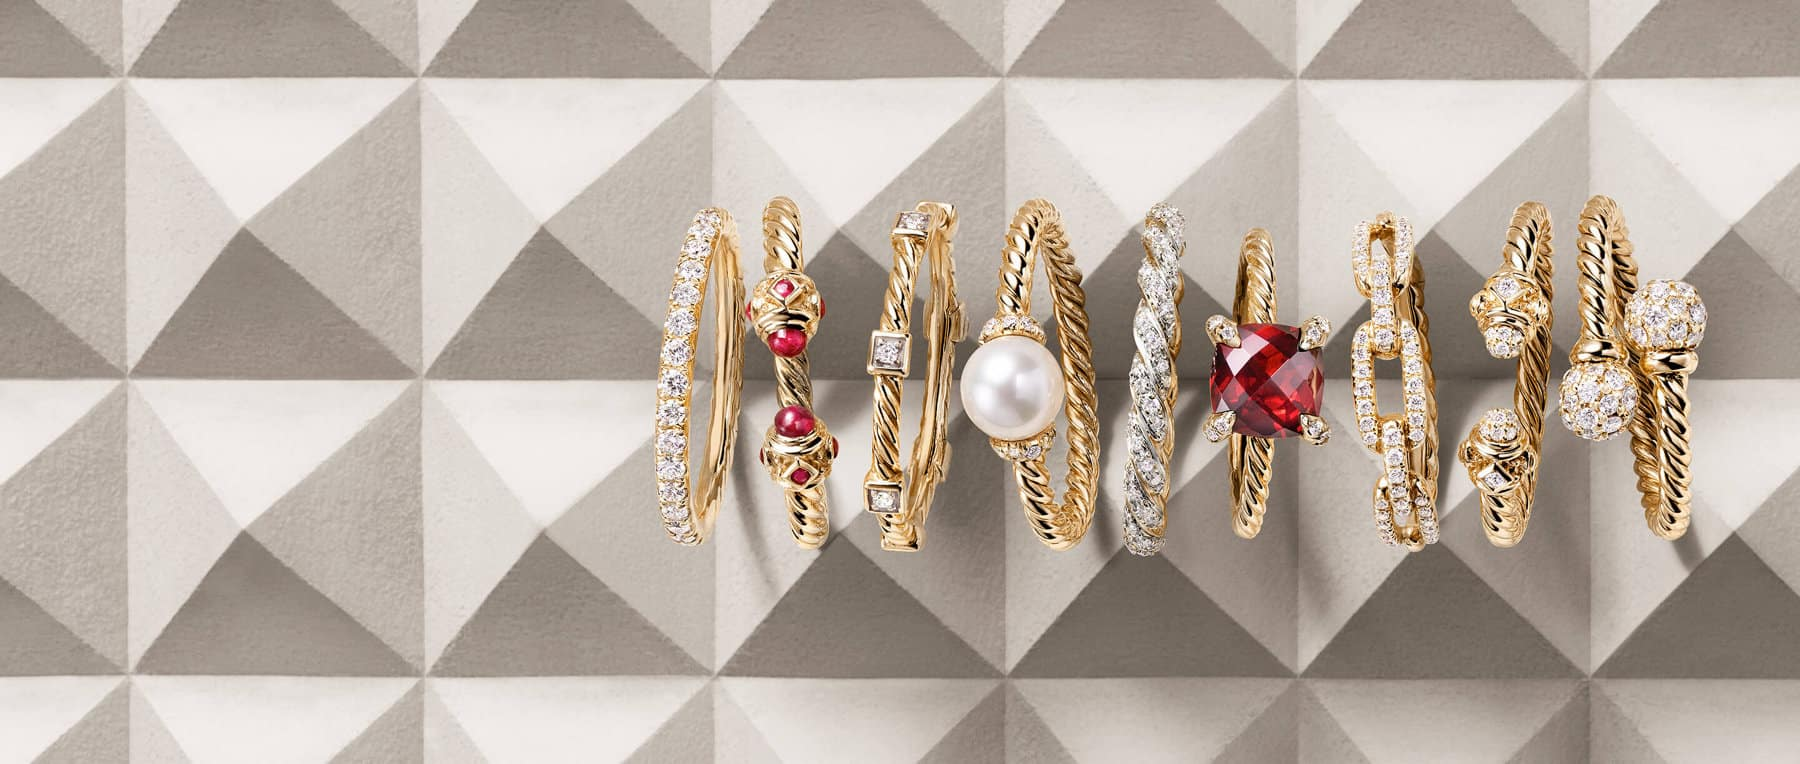 A color photo shows a horizontal stack of nine David Yurman women's rings from the DY Eden, Renaissance, DY Astor, Solari, Pavéflex, Châtelaine and Stax placed atop a beige-colored stone with pyramid-shaped protrusions. The women's jewelry is crafted from 18K yellow gold with or without white diamonds, rubies or garnet.